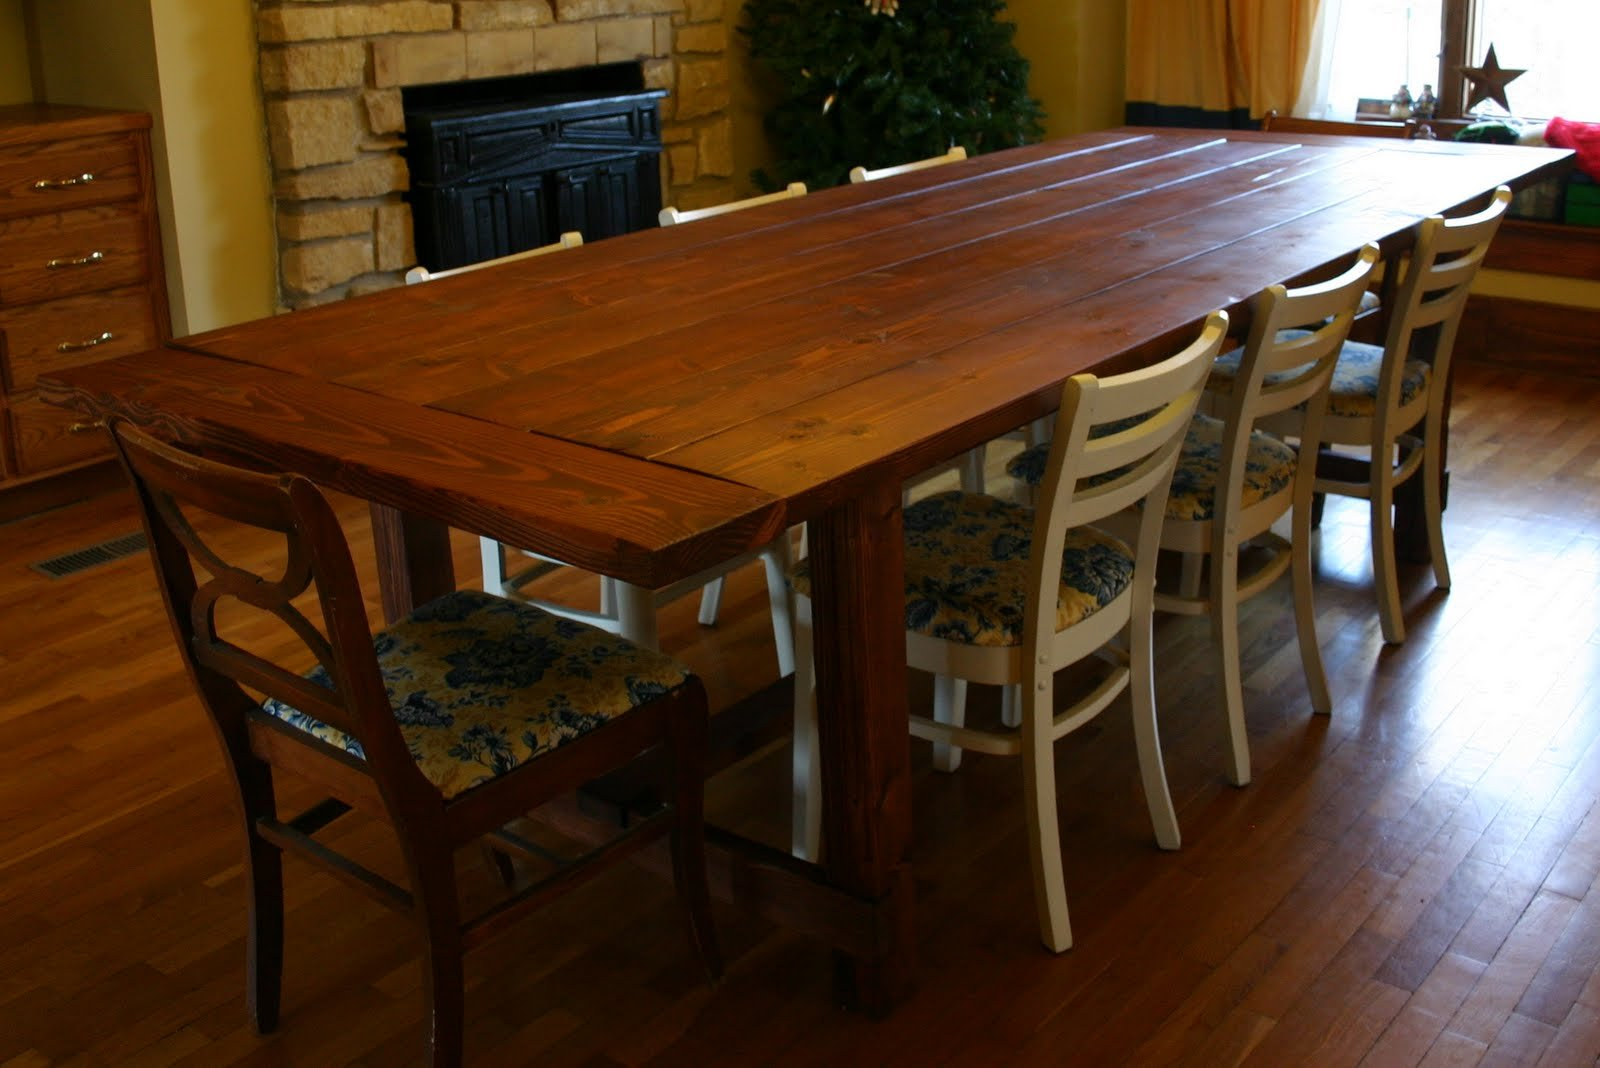 Dining Room Table Plans With Leaves Dining Room Table Plans With Leaves  Large And Beautiful Photos